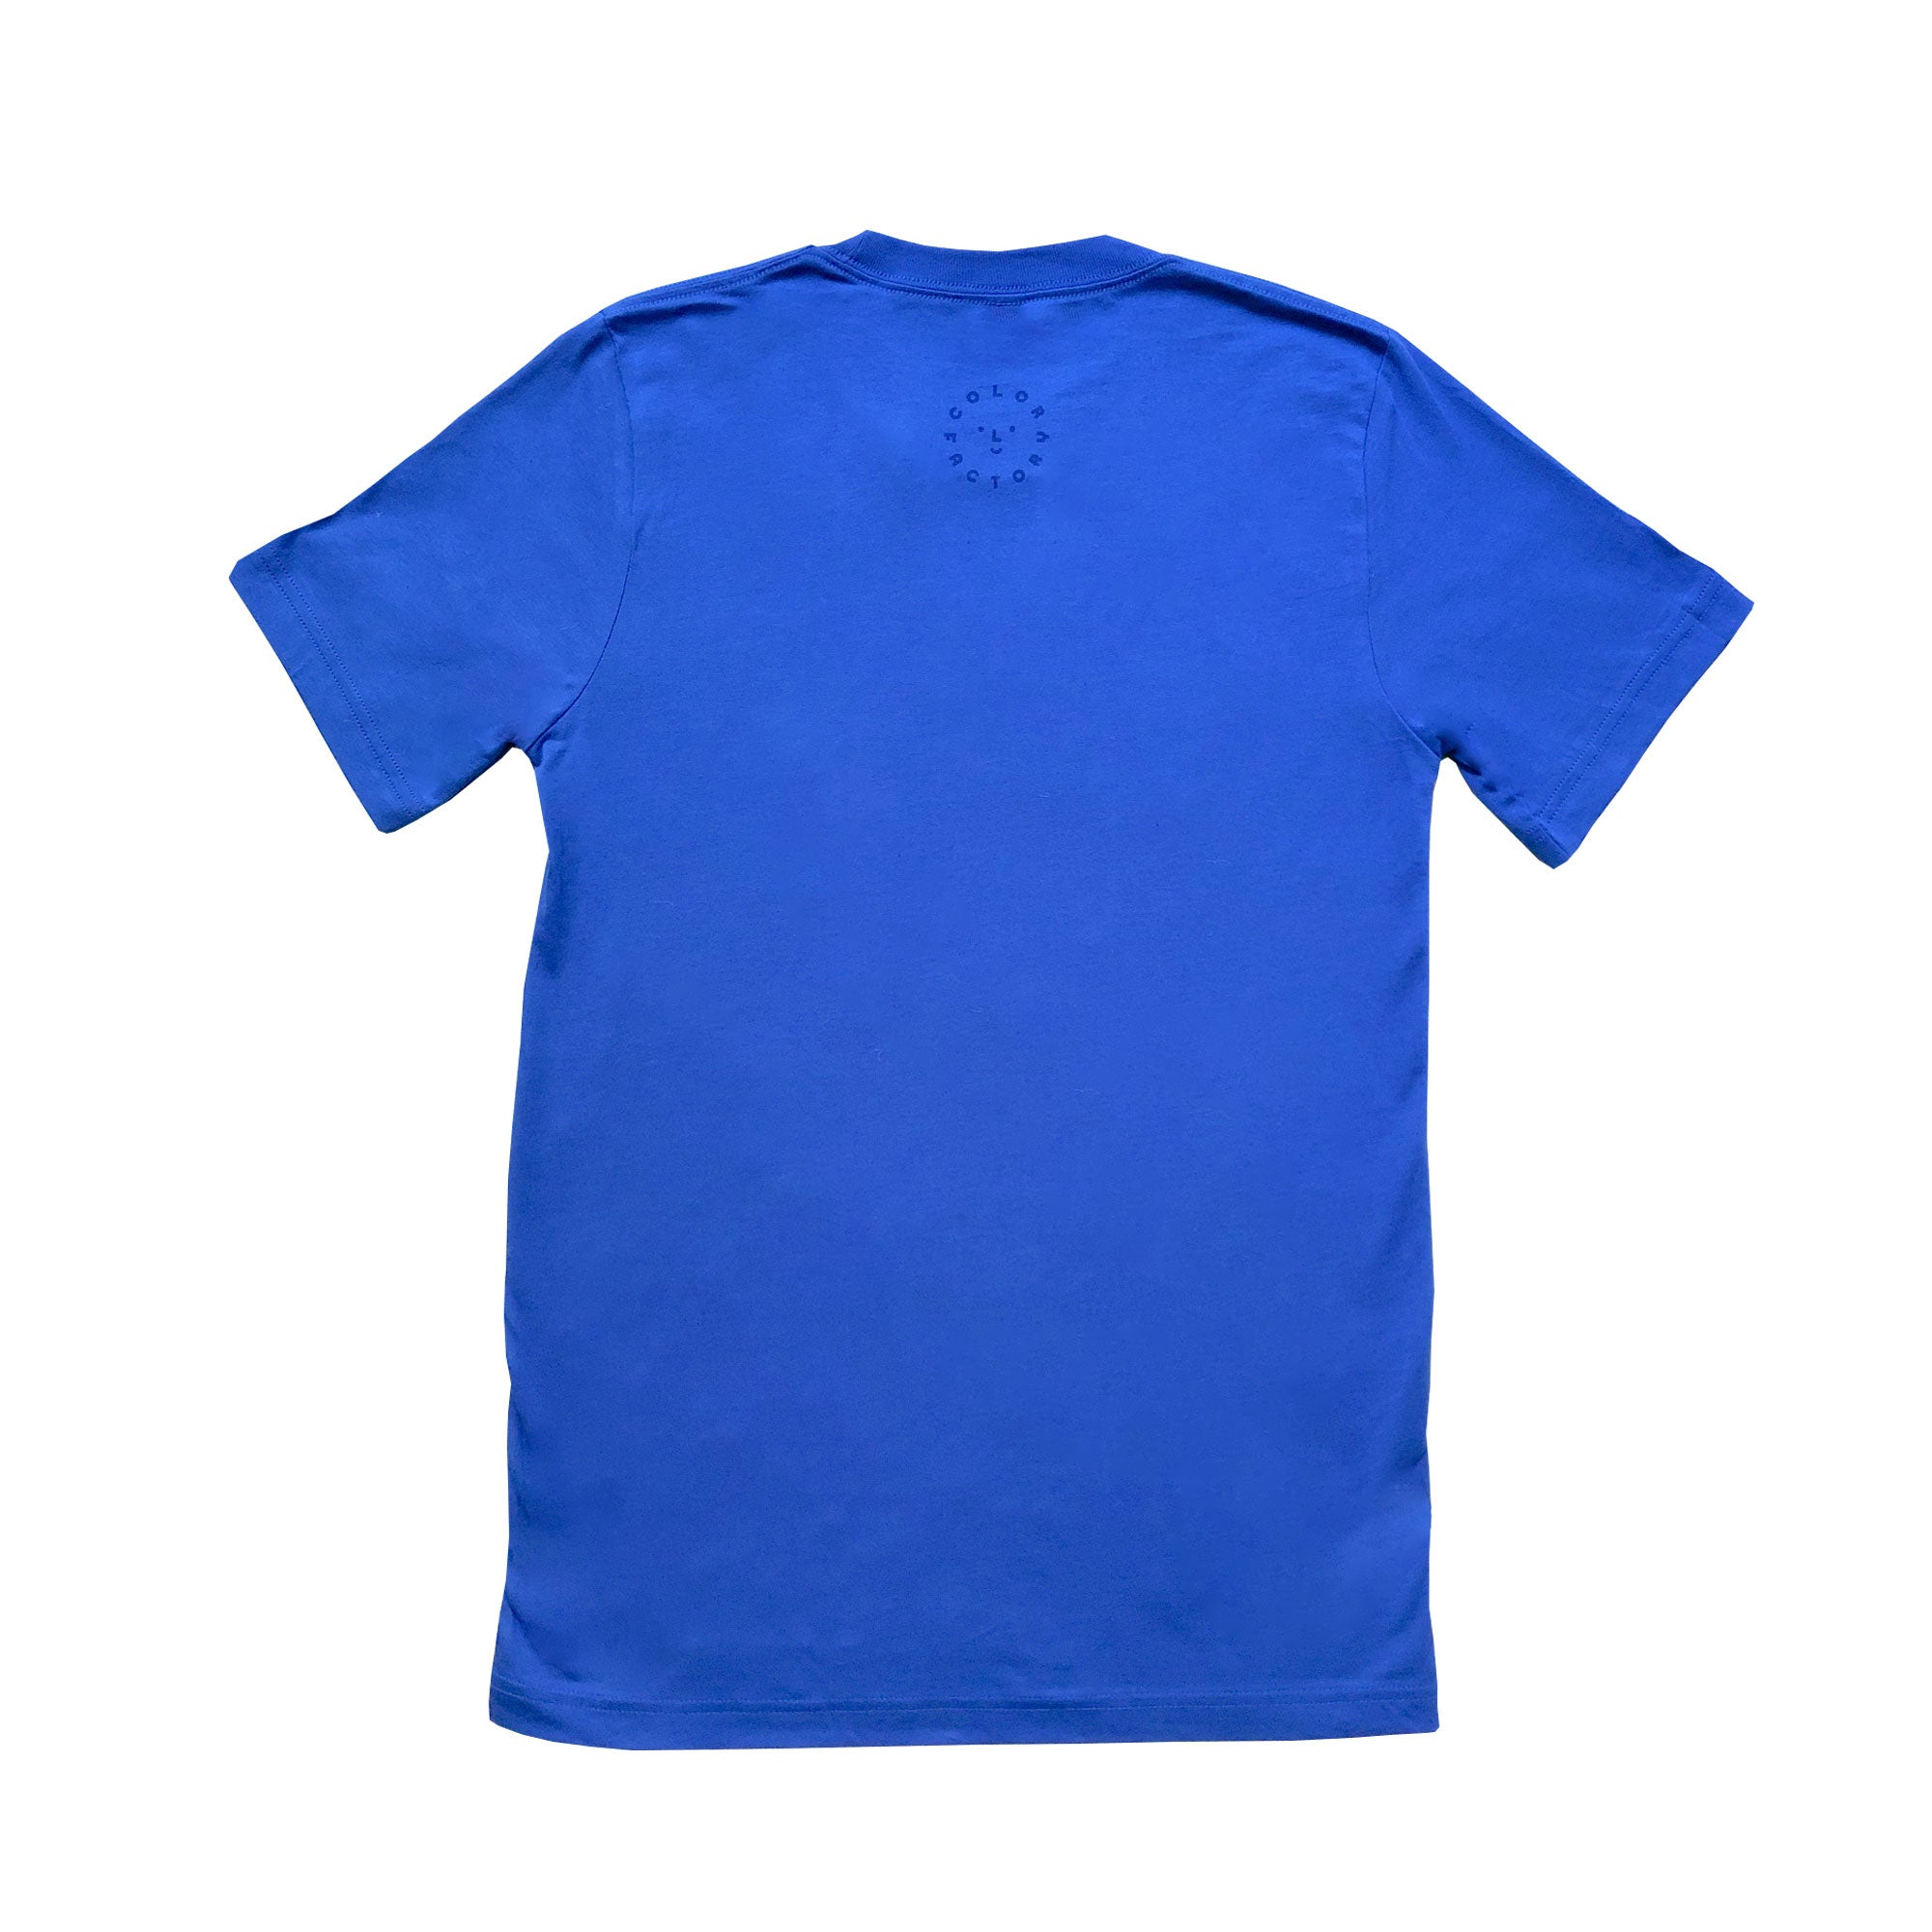 Favorite (Blue) Things Tee